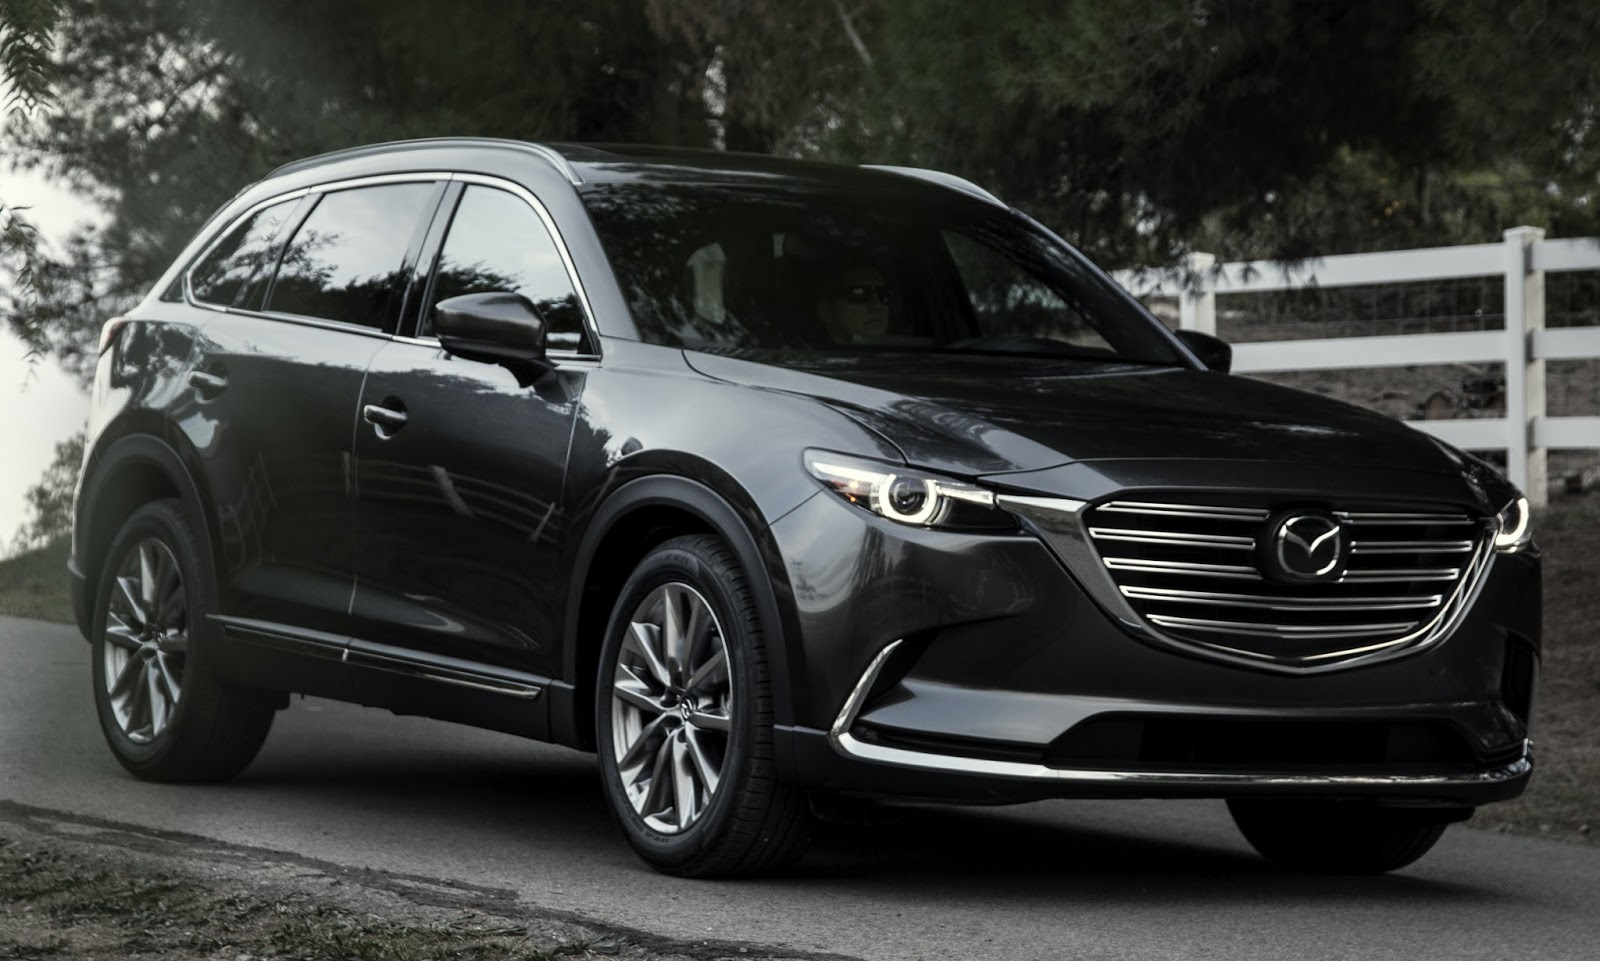 Mazda mazda cx 9 third row : uautoknow.net: All-new 2016 Mazda CX-9 now available starting at ...